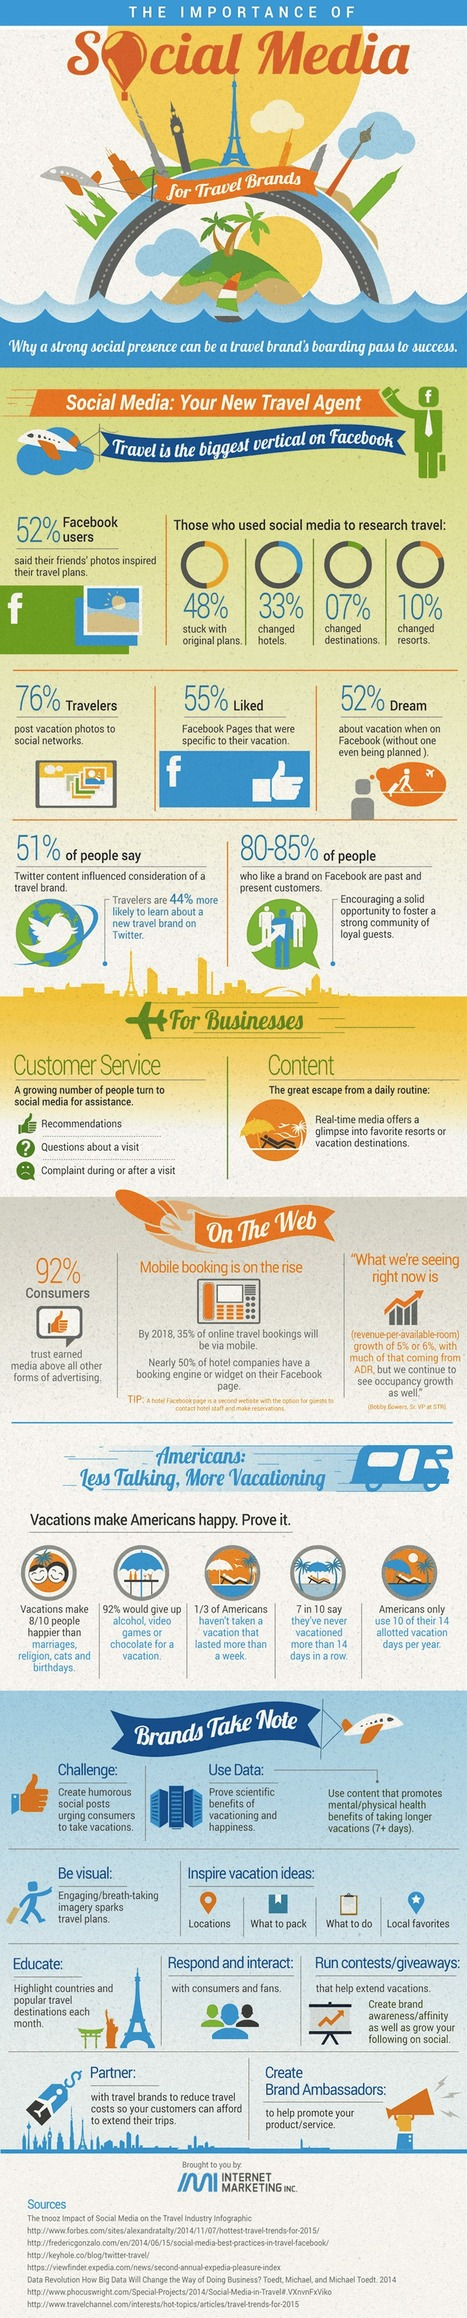 #SocialMedia and #Travel Go Hand in Hand #Infographic | Turismo&Territori in Rete | Scoop.it